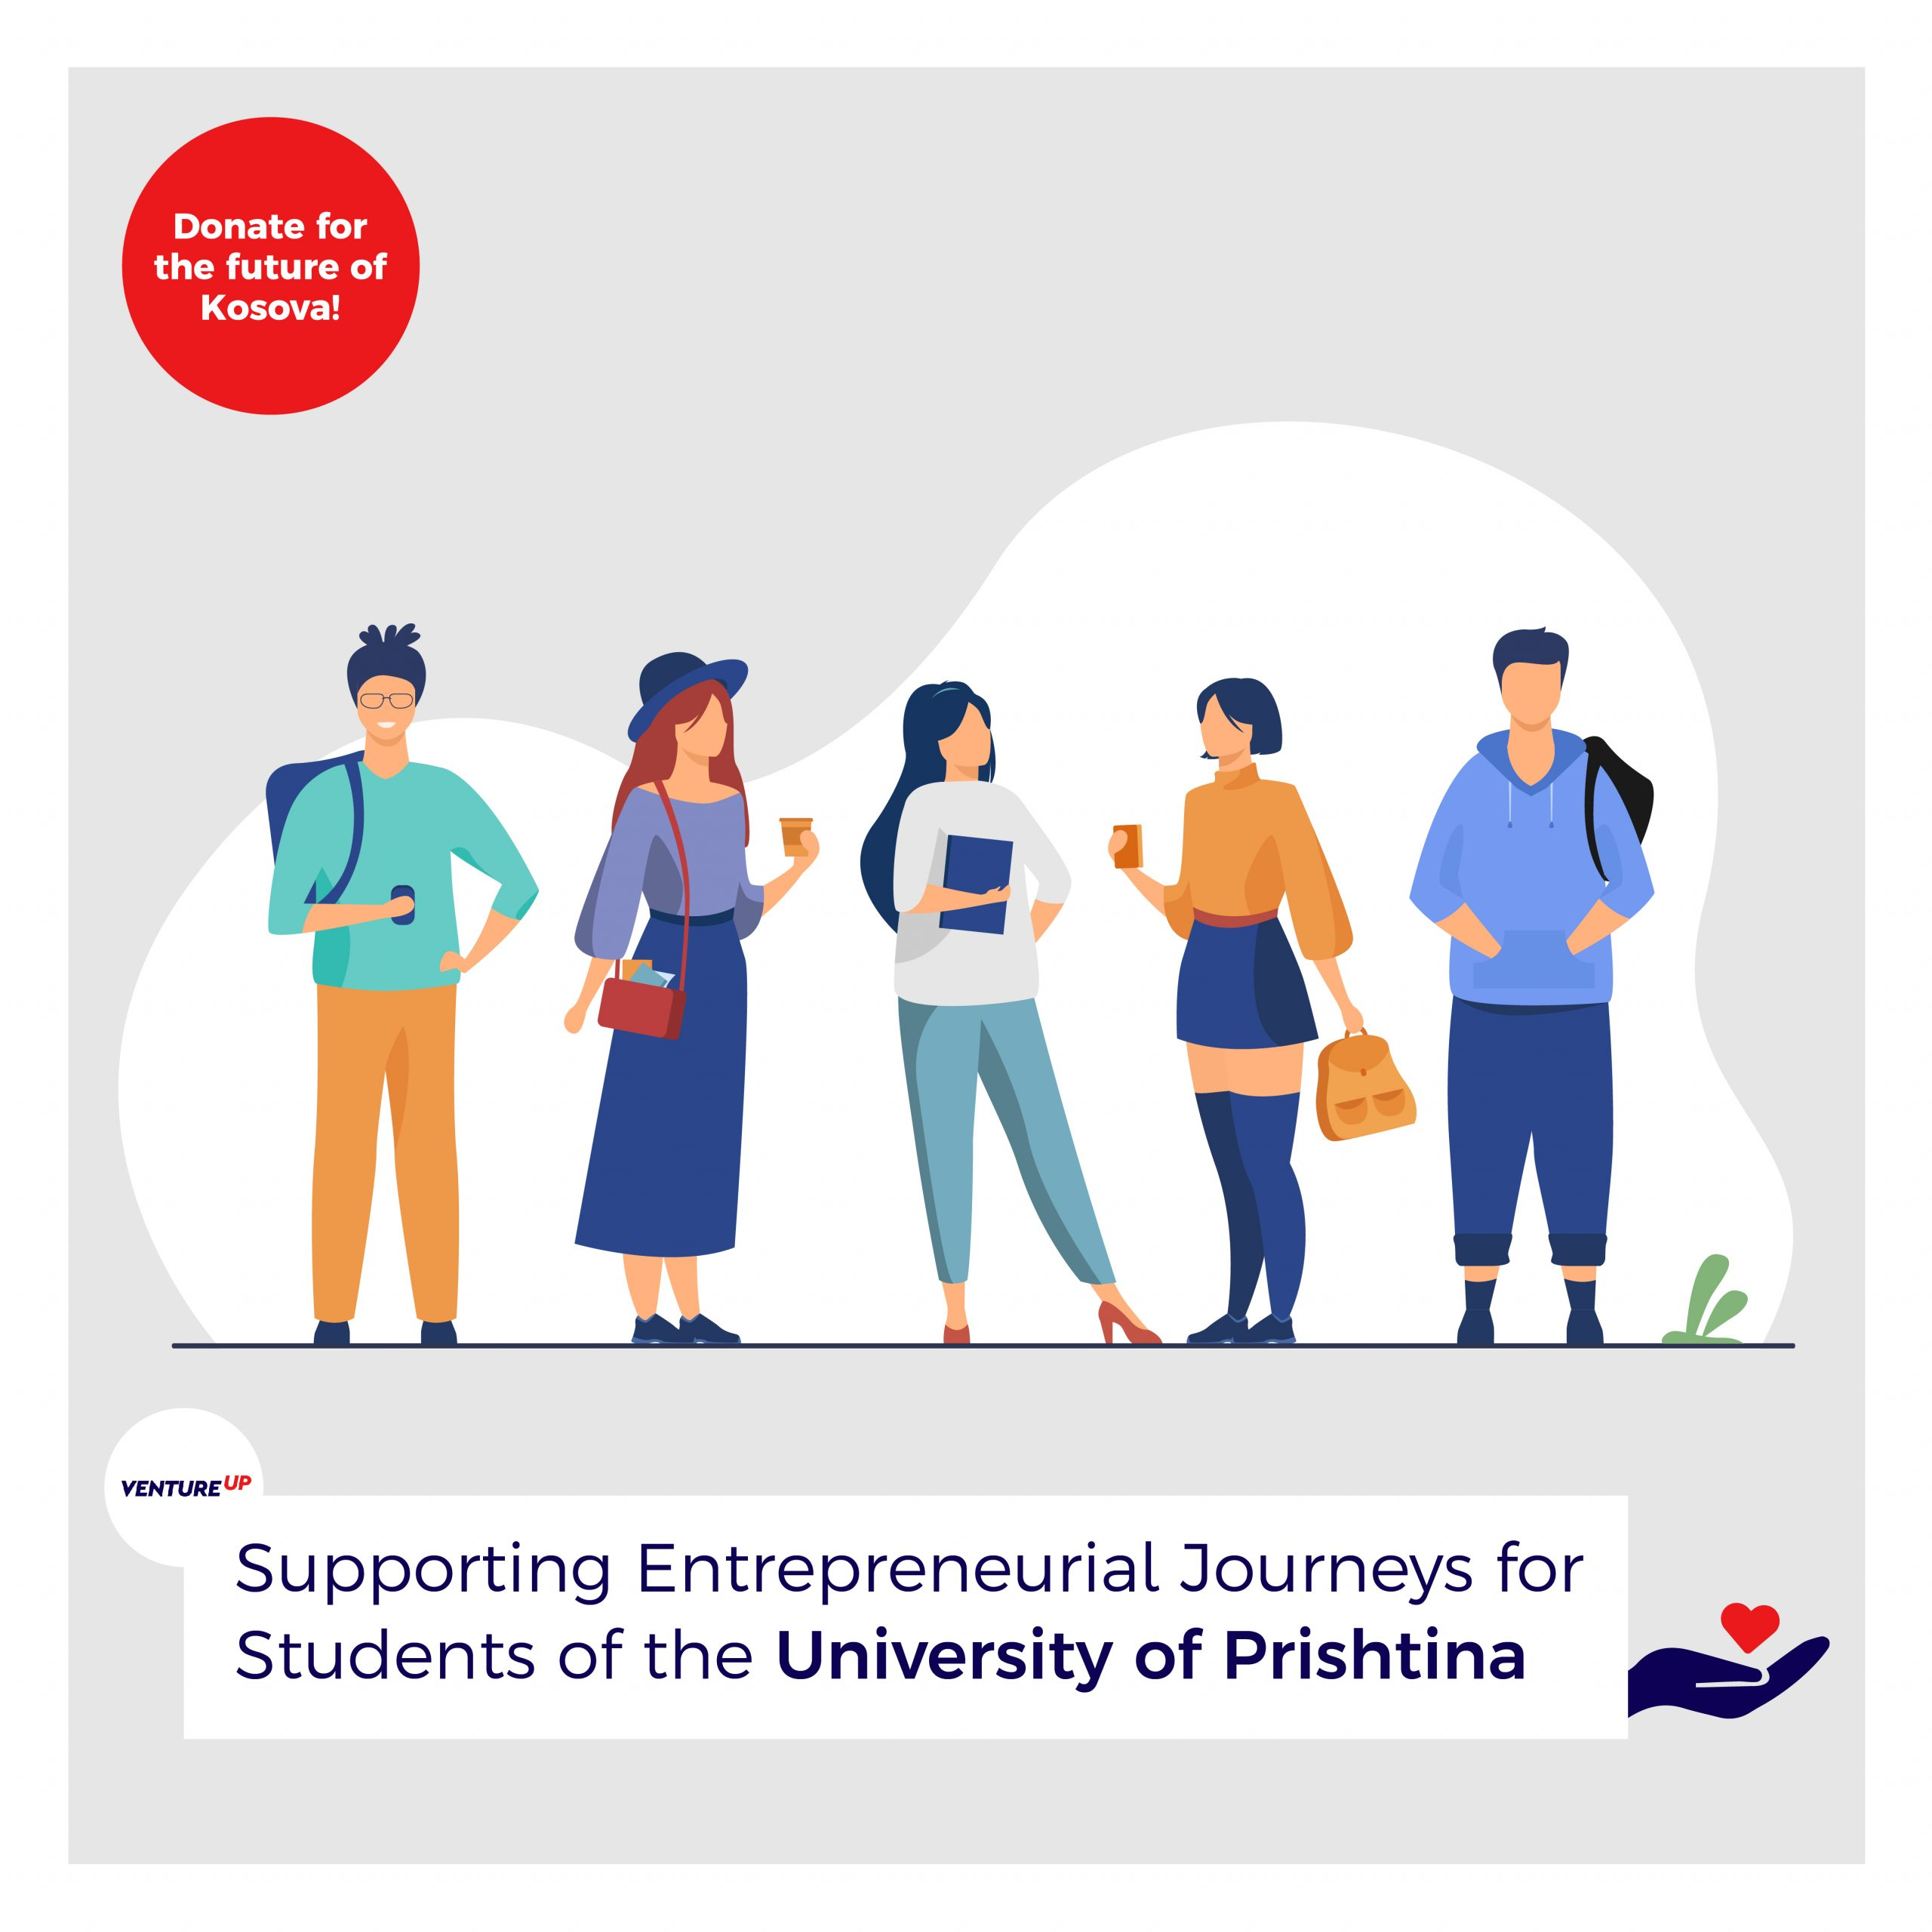 KOSOVA: Supporting Students of the University of Prishtina and their Ventures